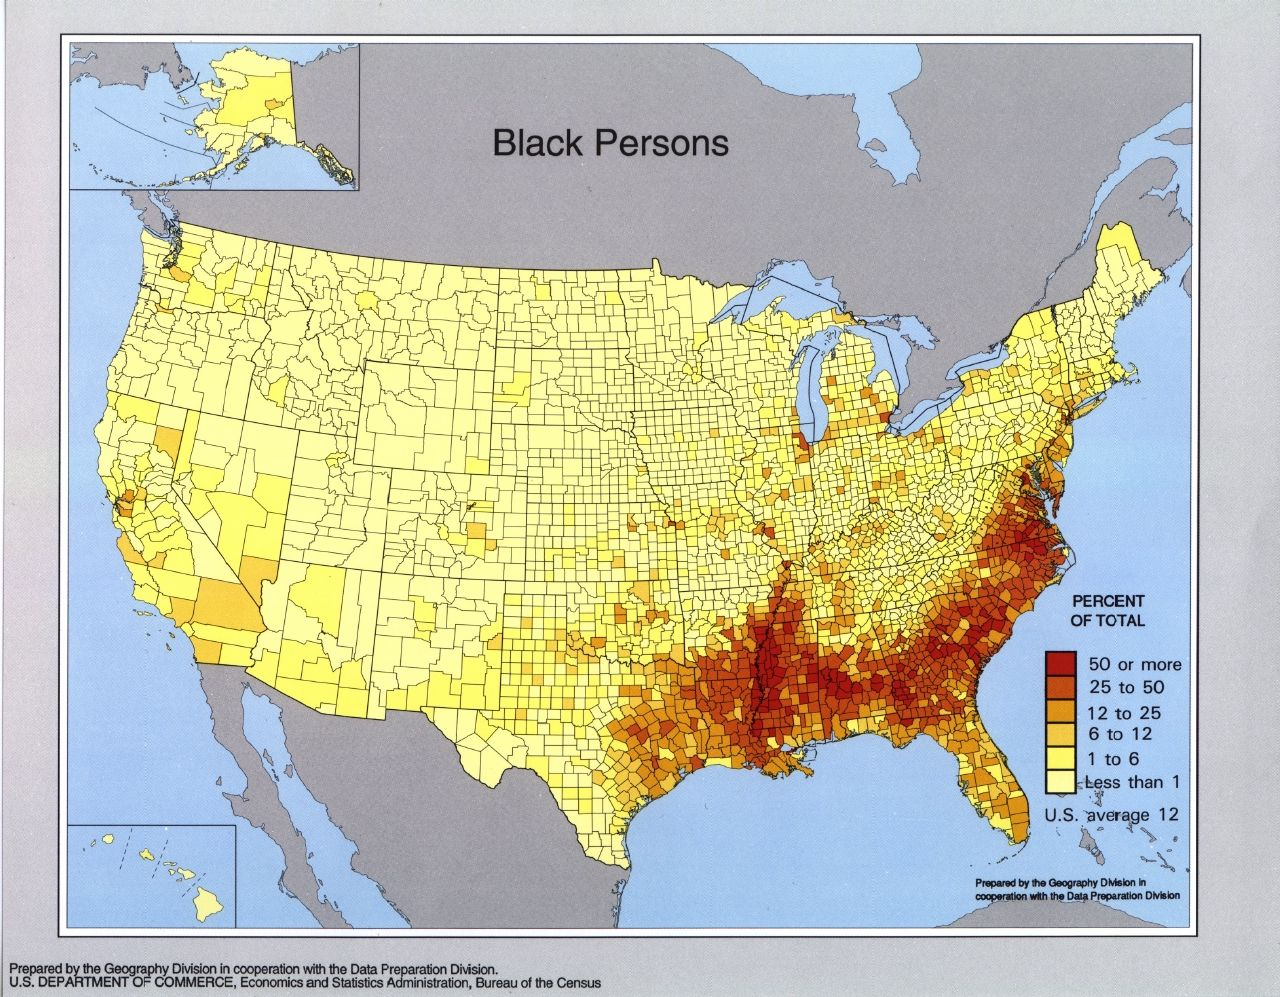 Black persons population density in the United States